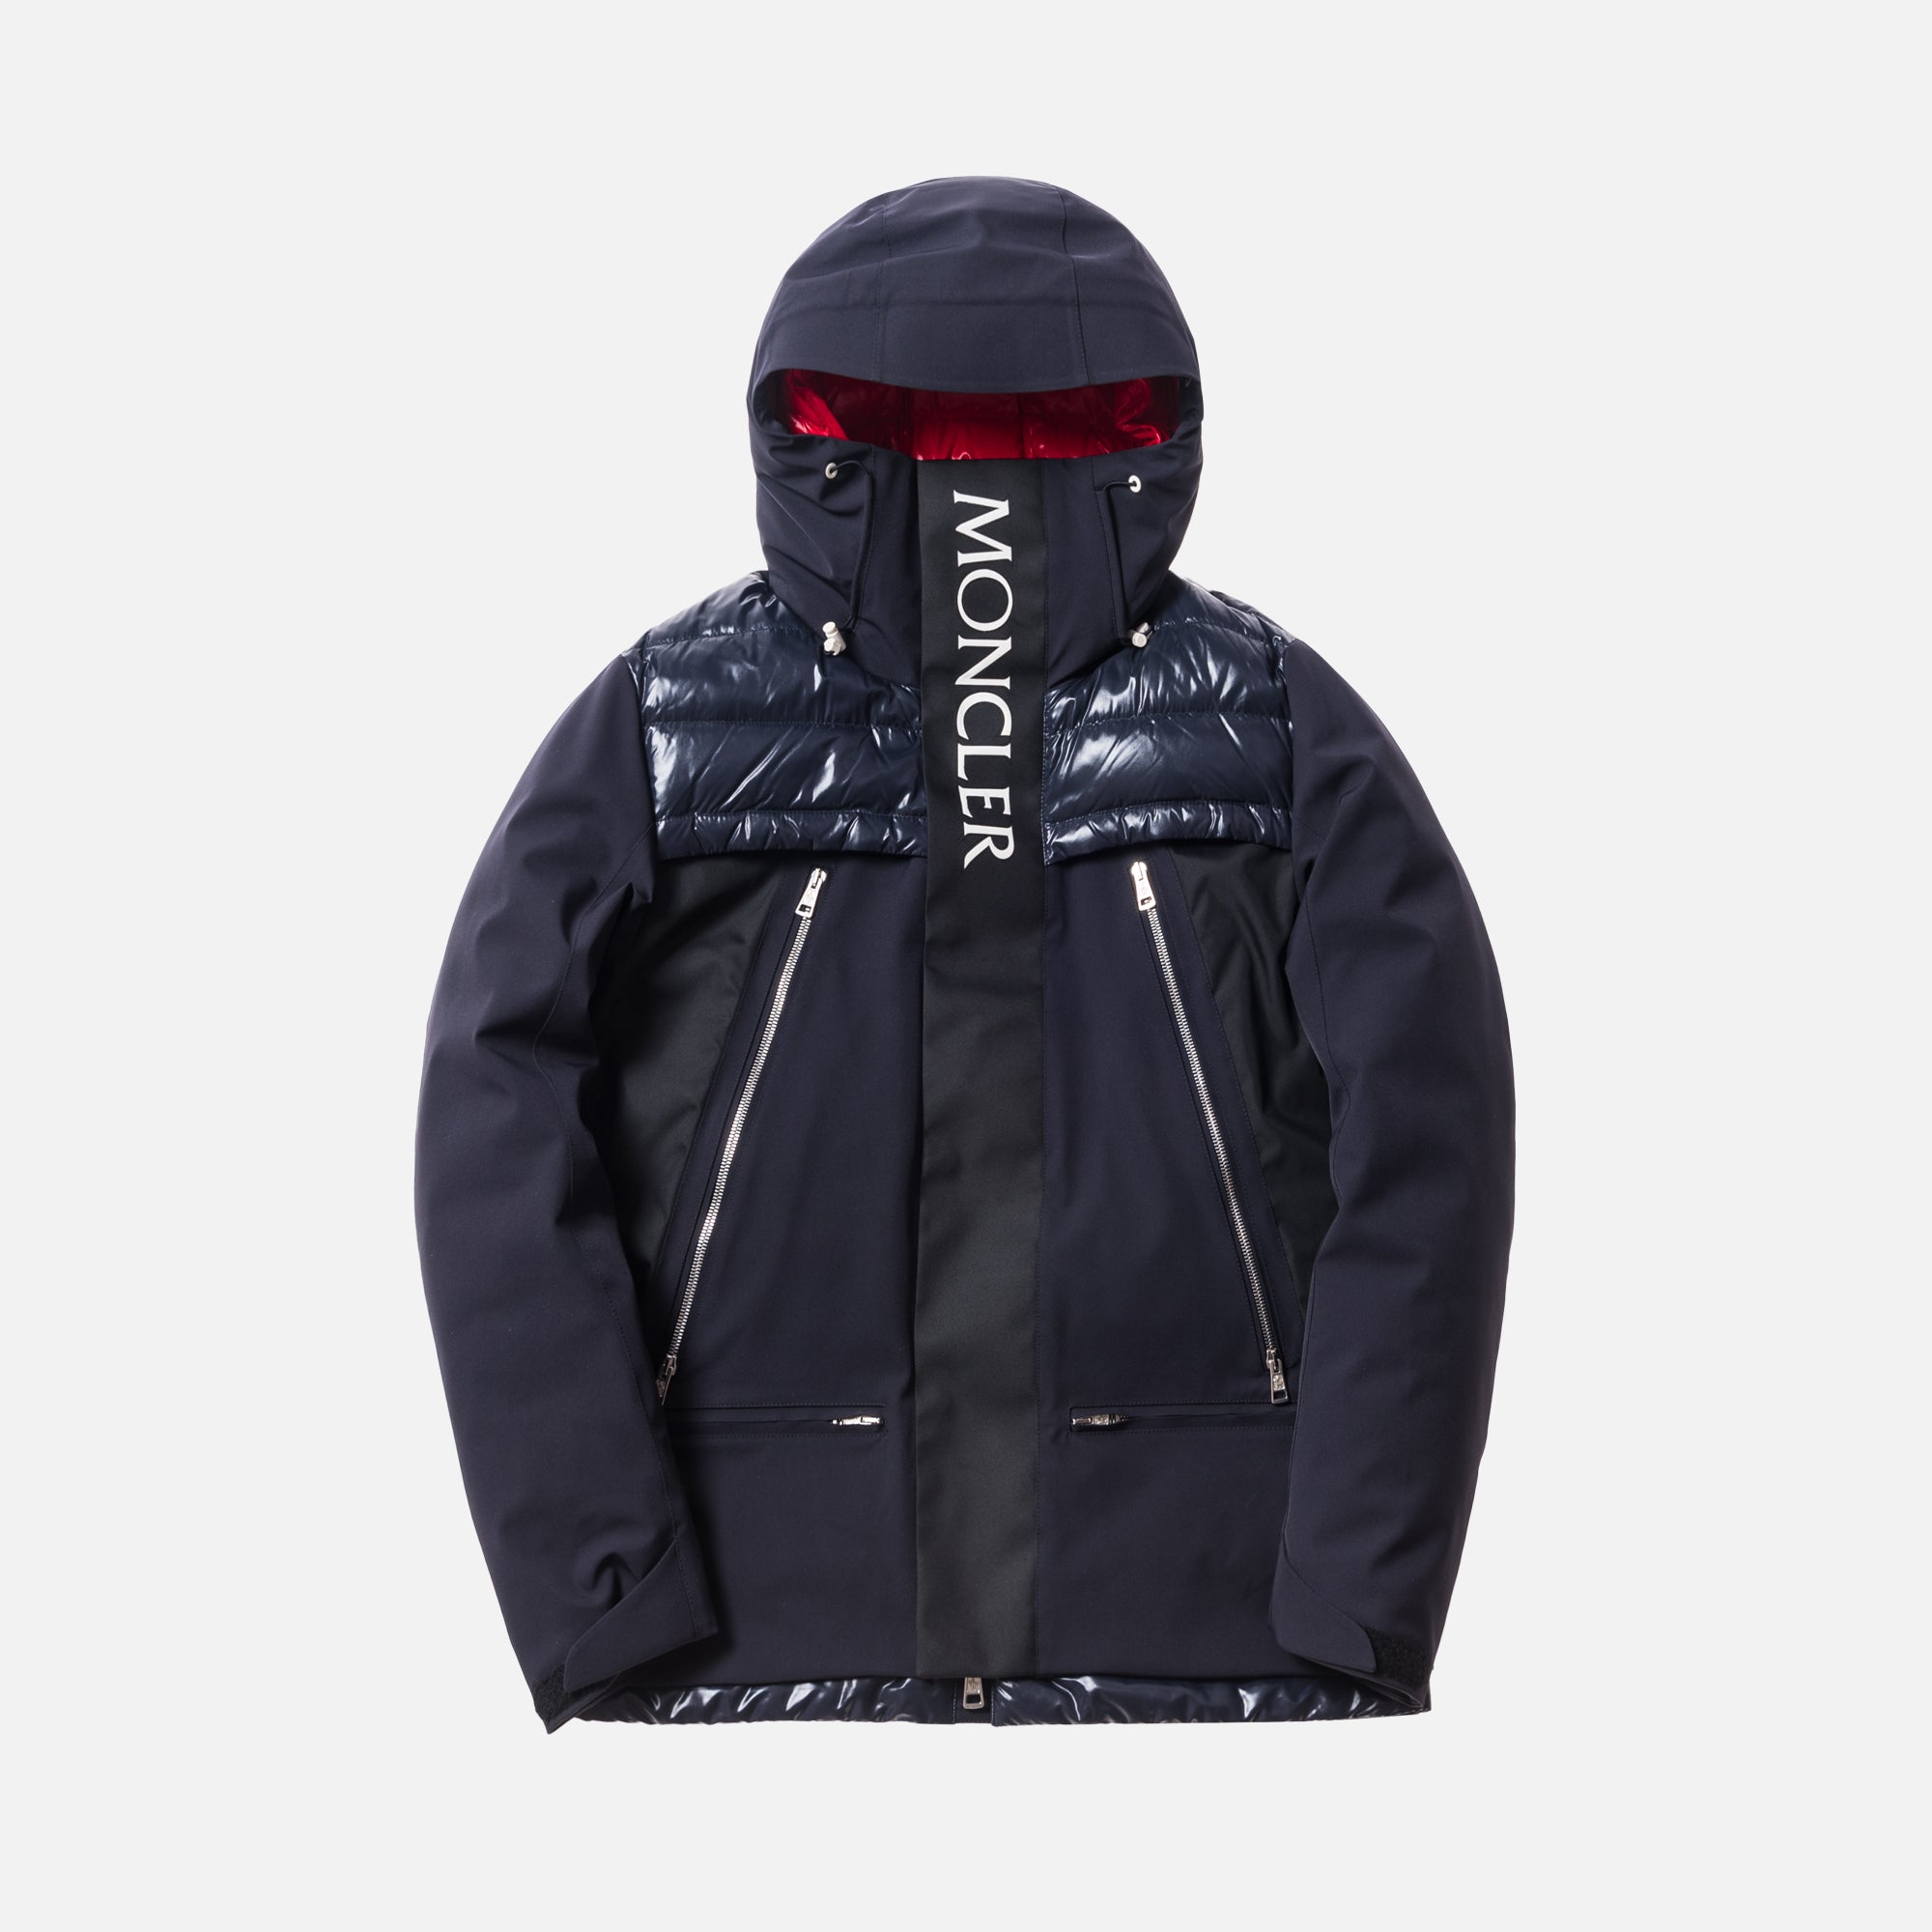 Kith x Moncler Parrachee Long Down Jacket - Navy